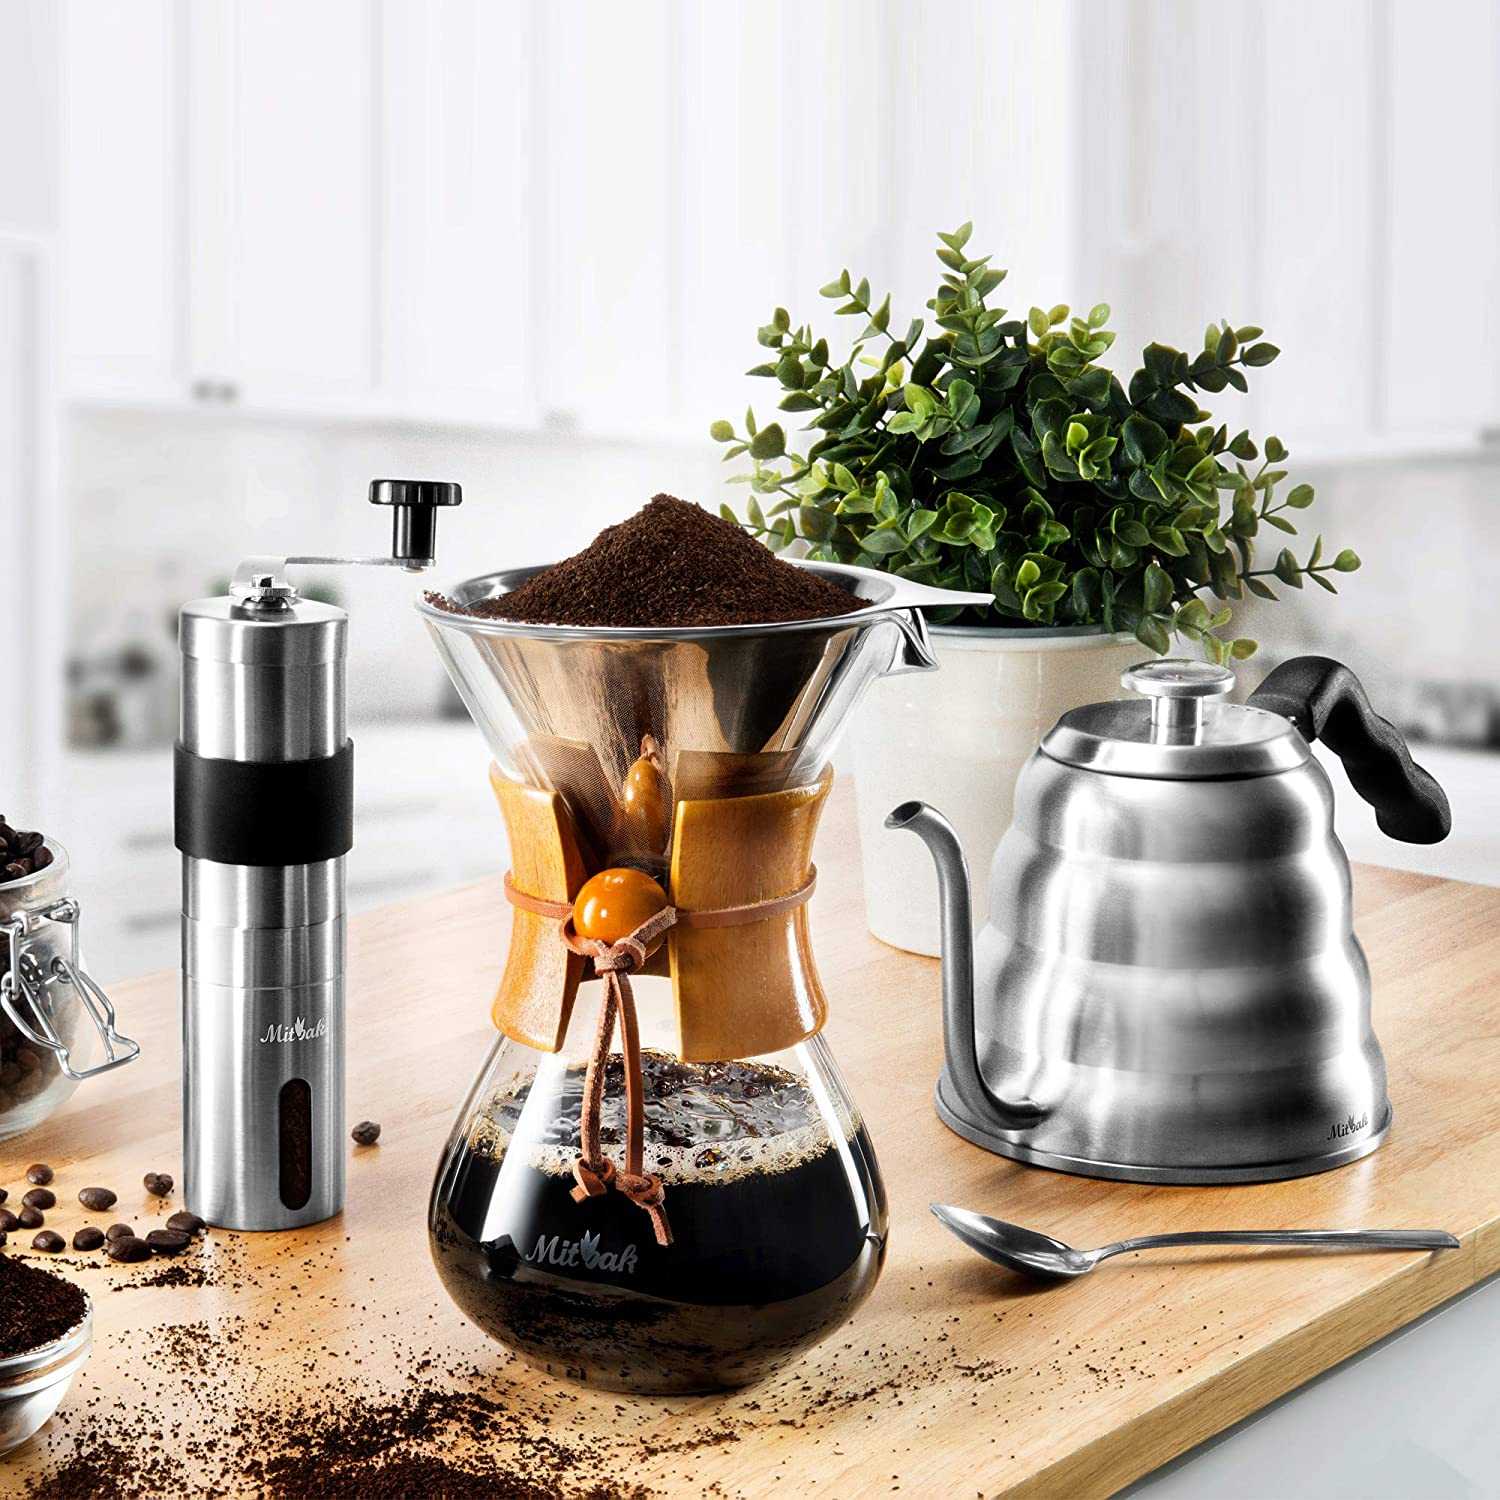 MITBAK Pour Over Coffee Maker Set Kit Includes Gooseneck Kettle with Thermometer, Coffee Mill Grinder Coffee Dripper Brewer Great Replcaement for Coffee Machines